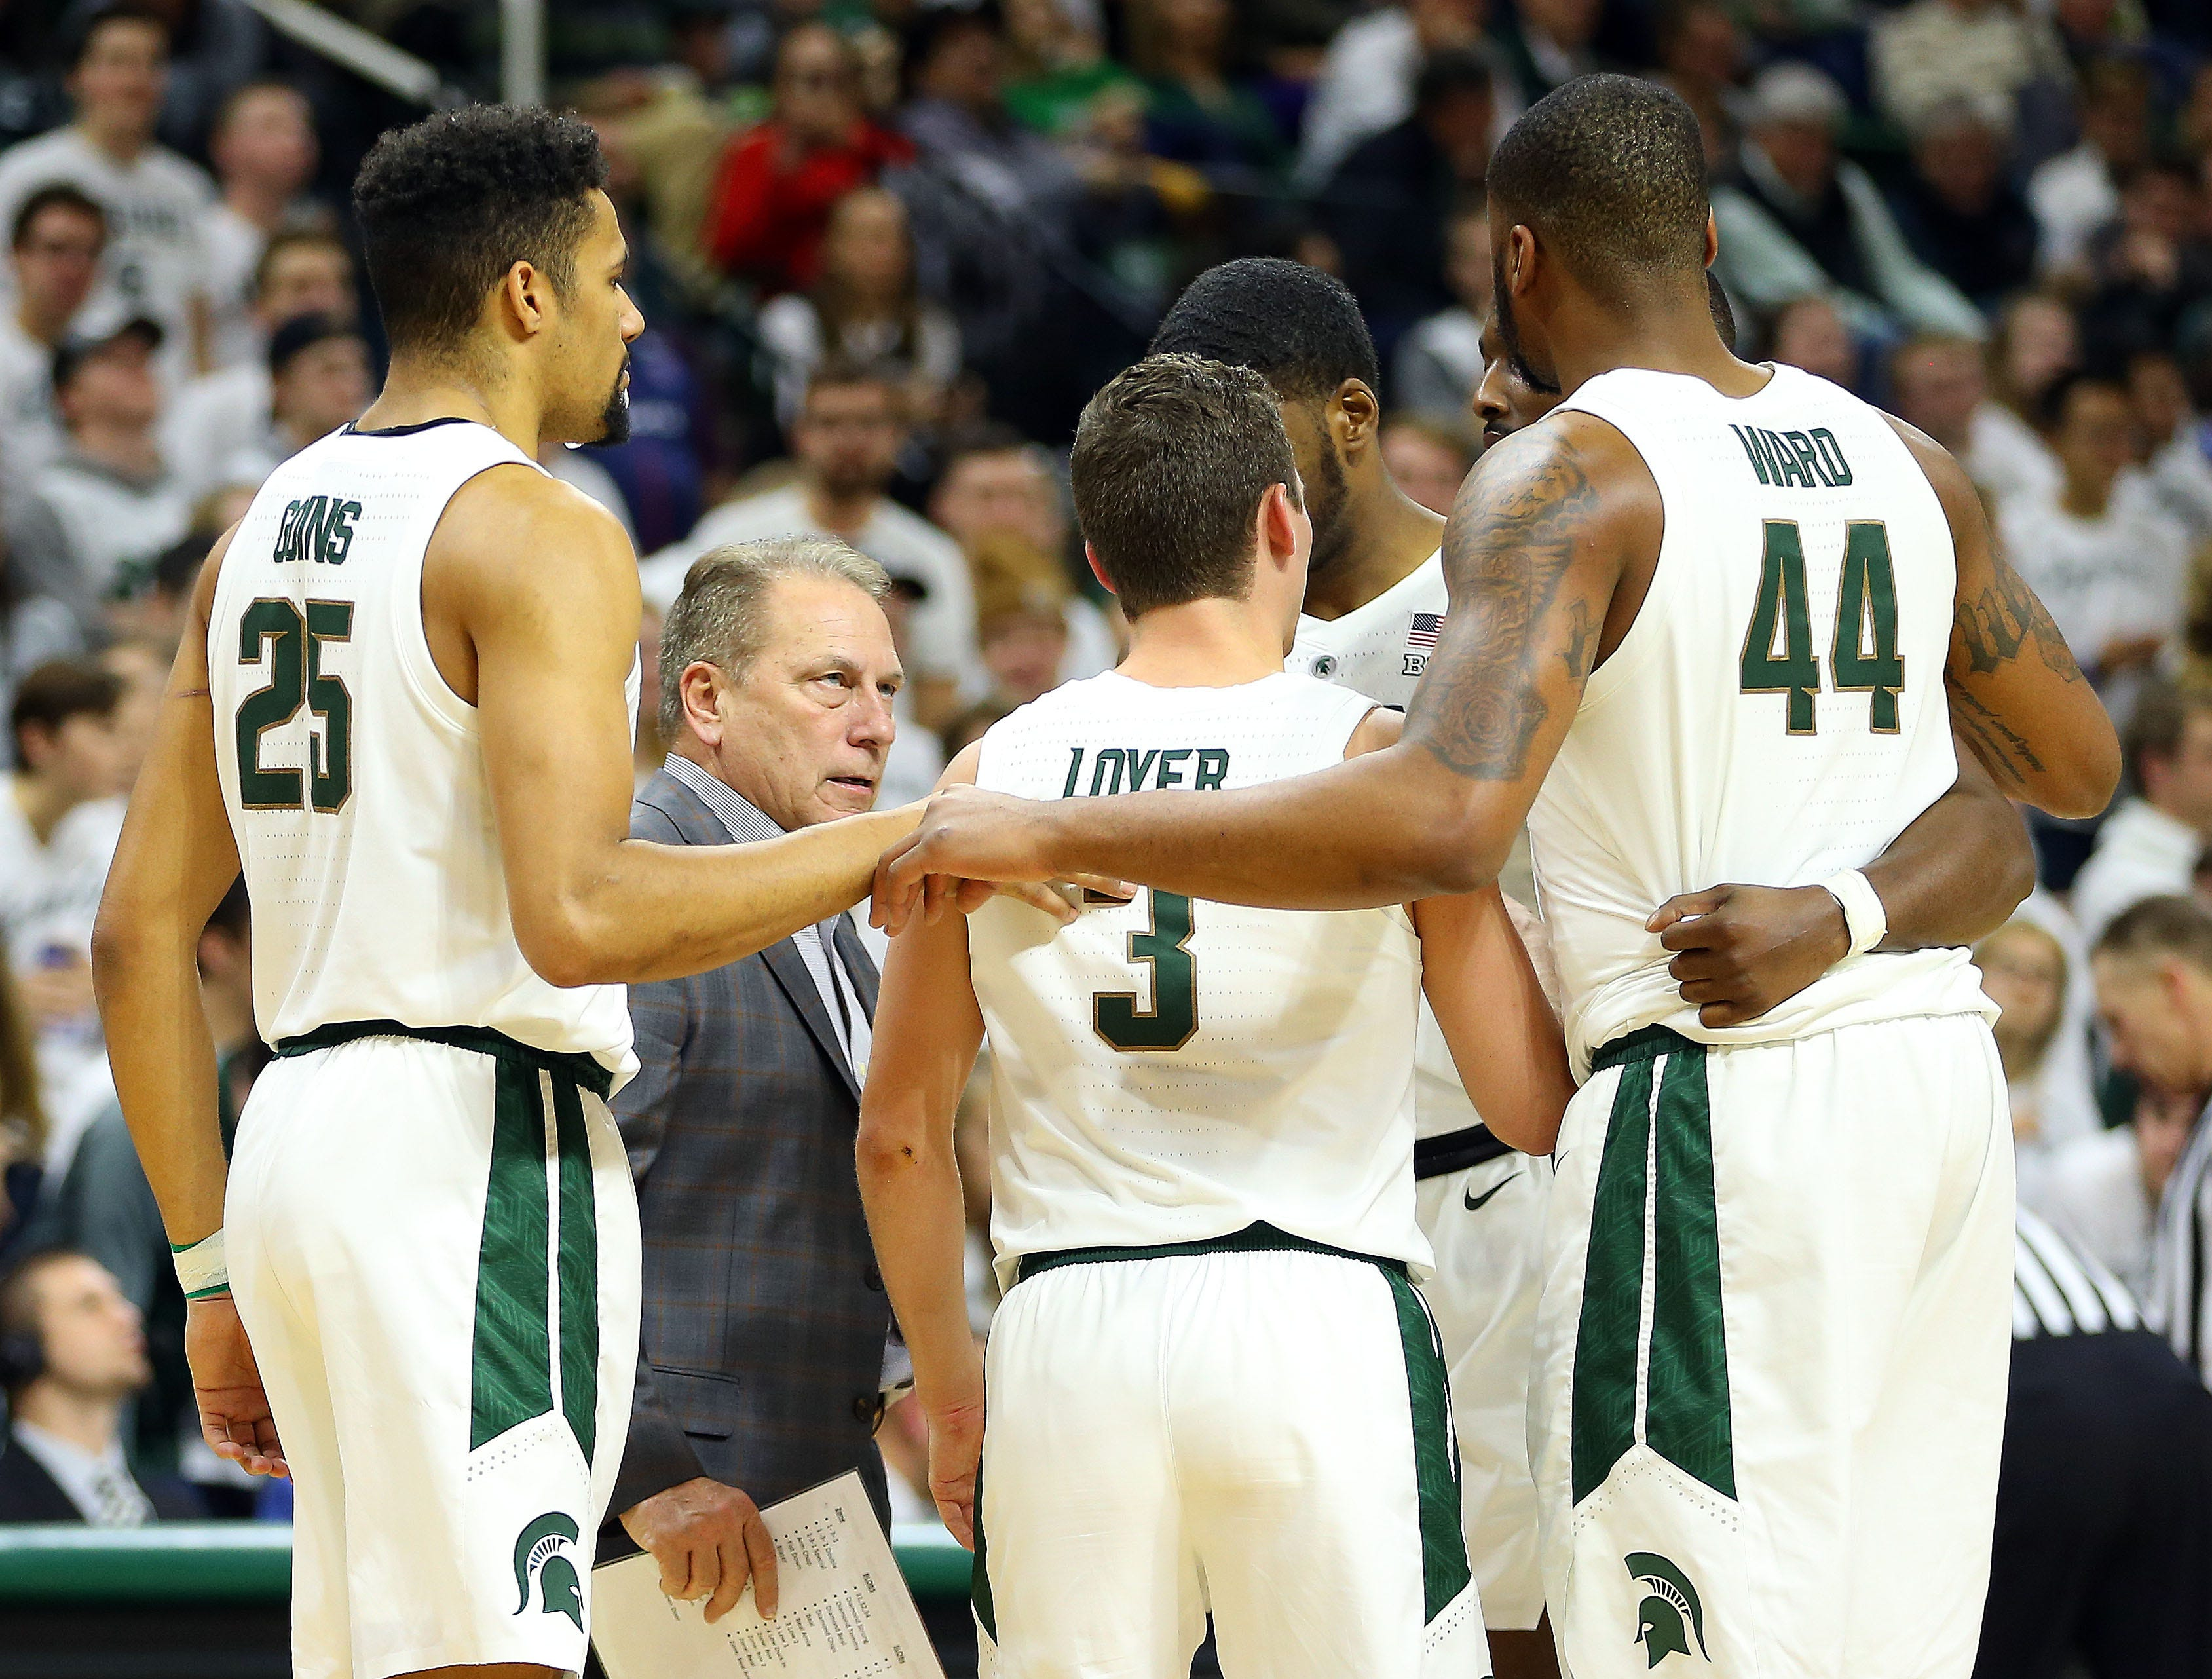 Nov 11, 2018; East Lansing, MI, USA; Michigan State Spartans head coach Tom Izzo talks with forward Kenny Goins (25) and guard Foster Loyer (3) and forward Nick Ward (44) during the second half of a game against the Florida Gulf Coast Eagles at the Breslin Center. Mandatory Credit: Mike Carter-USA TODAY Sports